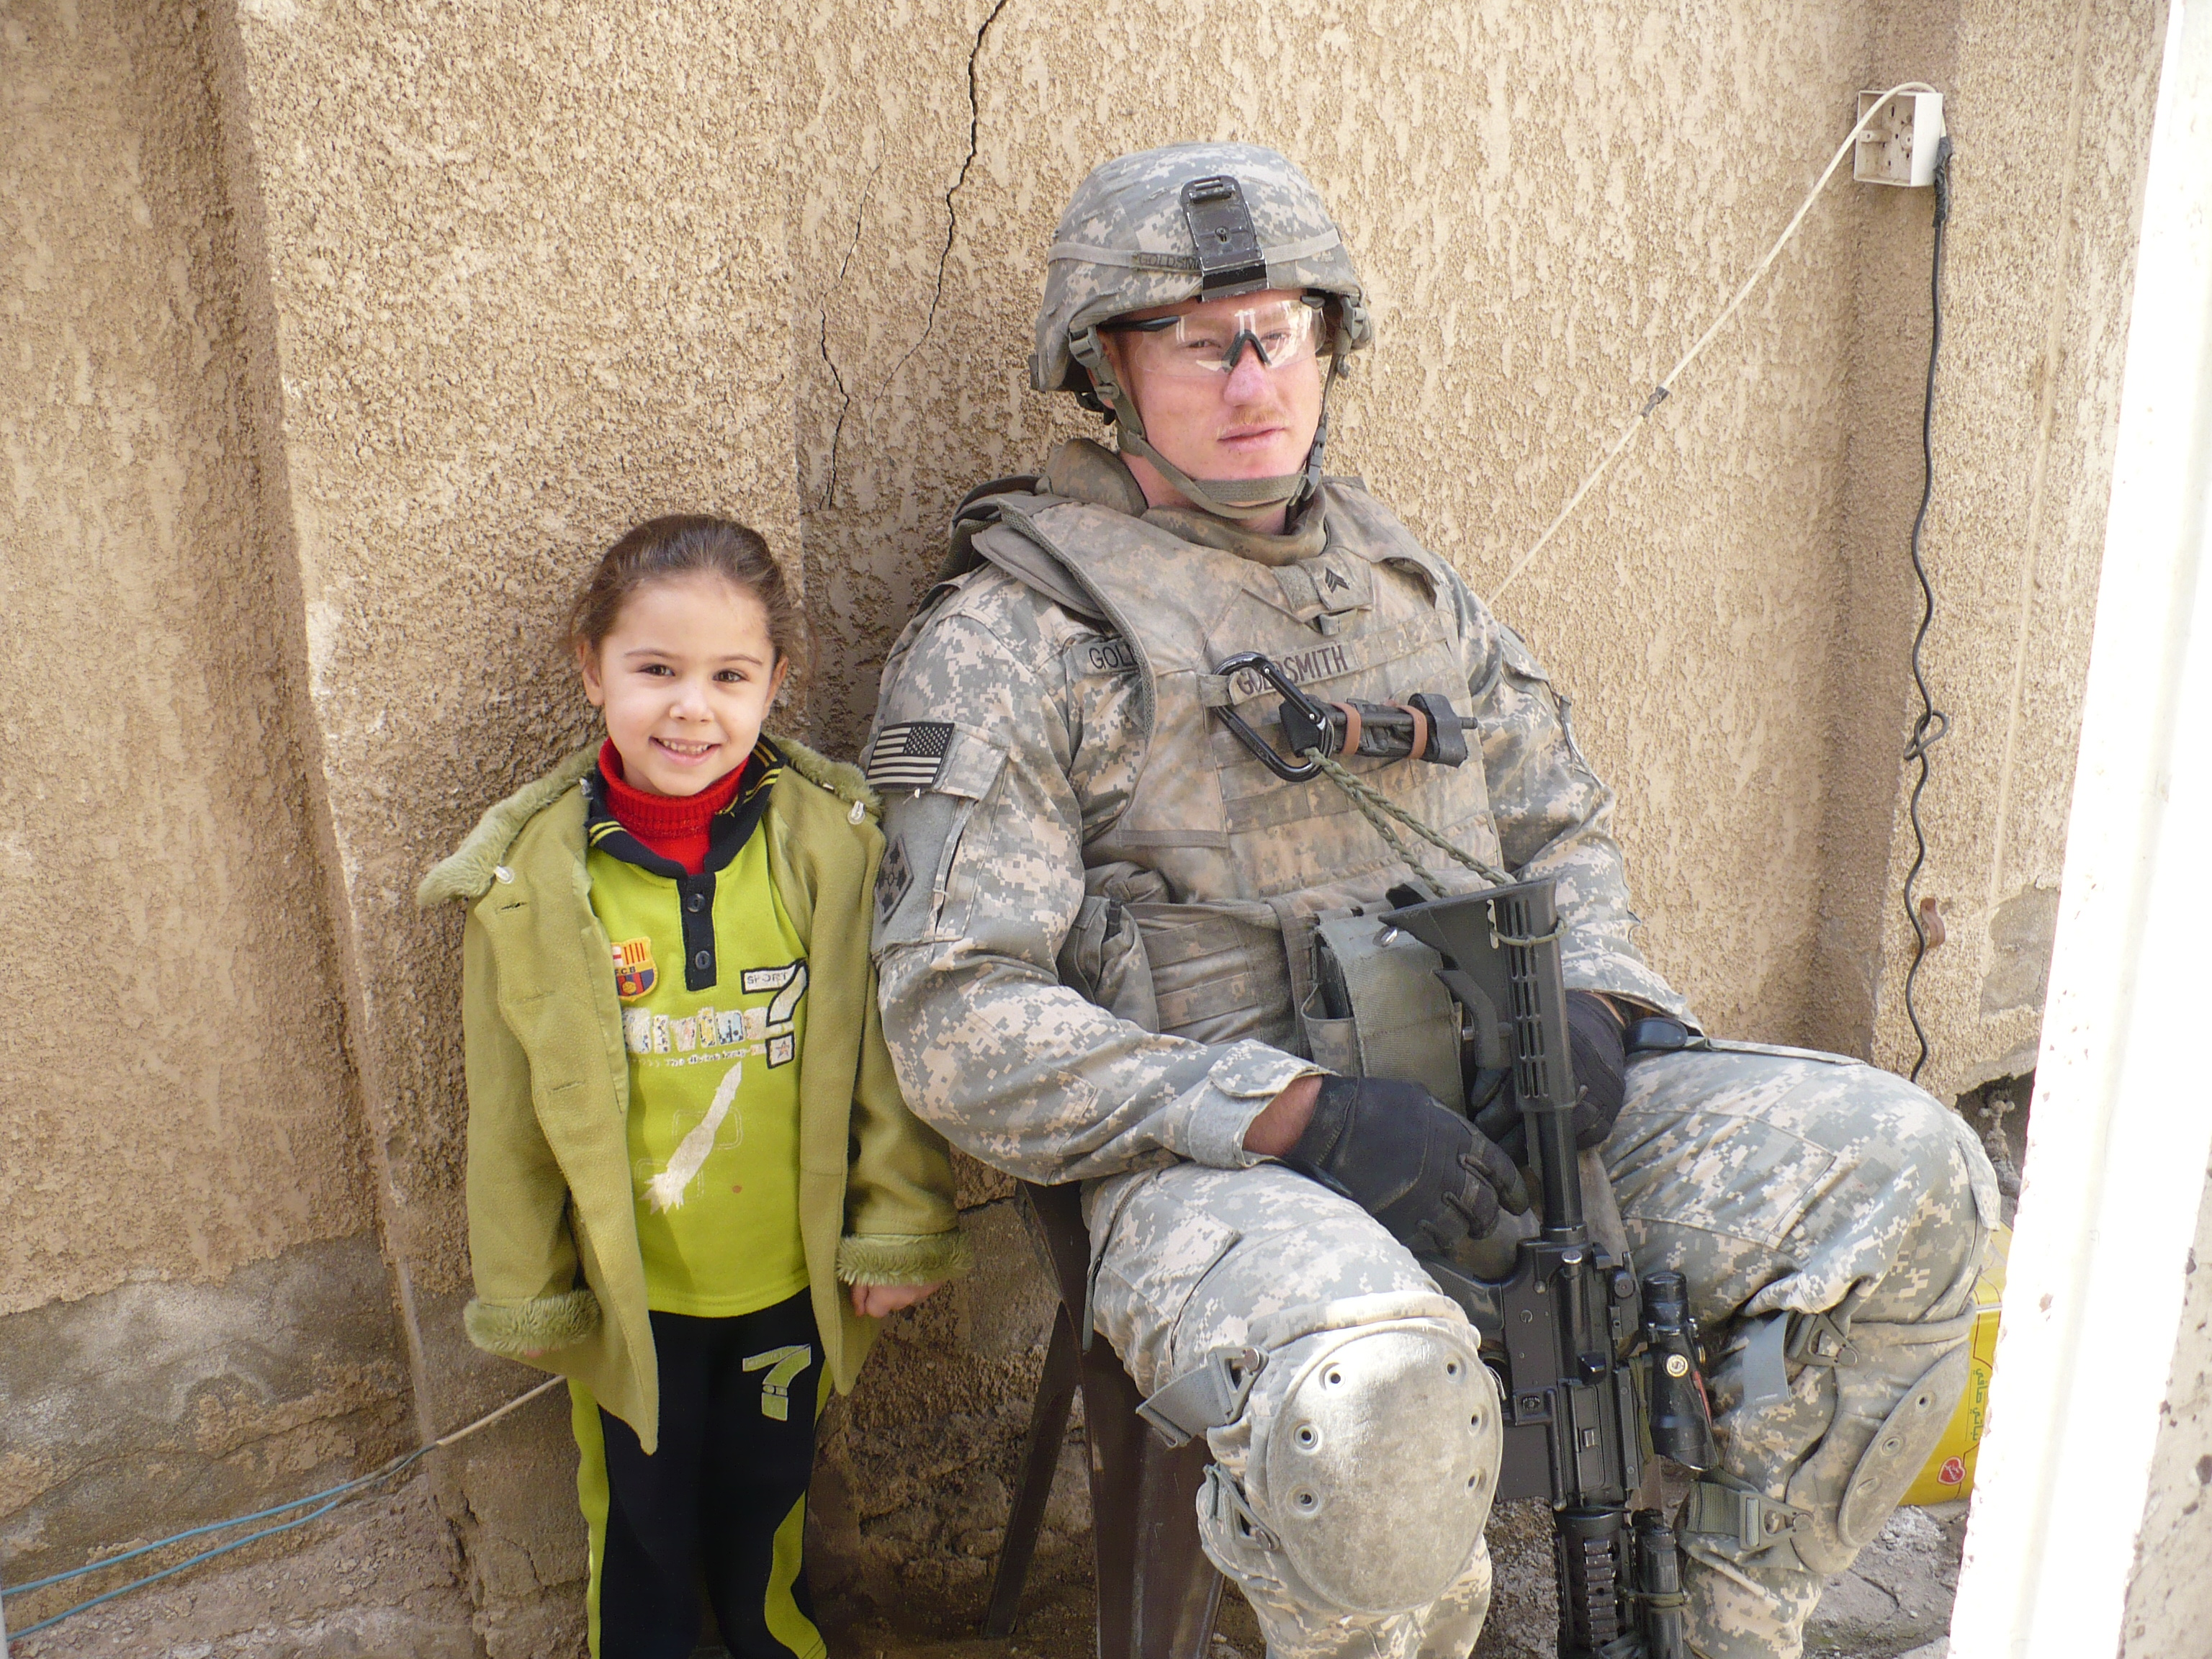 This cute little girl had no fear as the dozen armed and armored American soldiers entered her house to search for AK-47s. She followed us around and posed for this picture with the author.